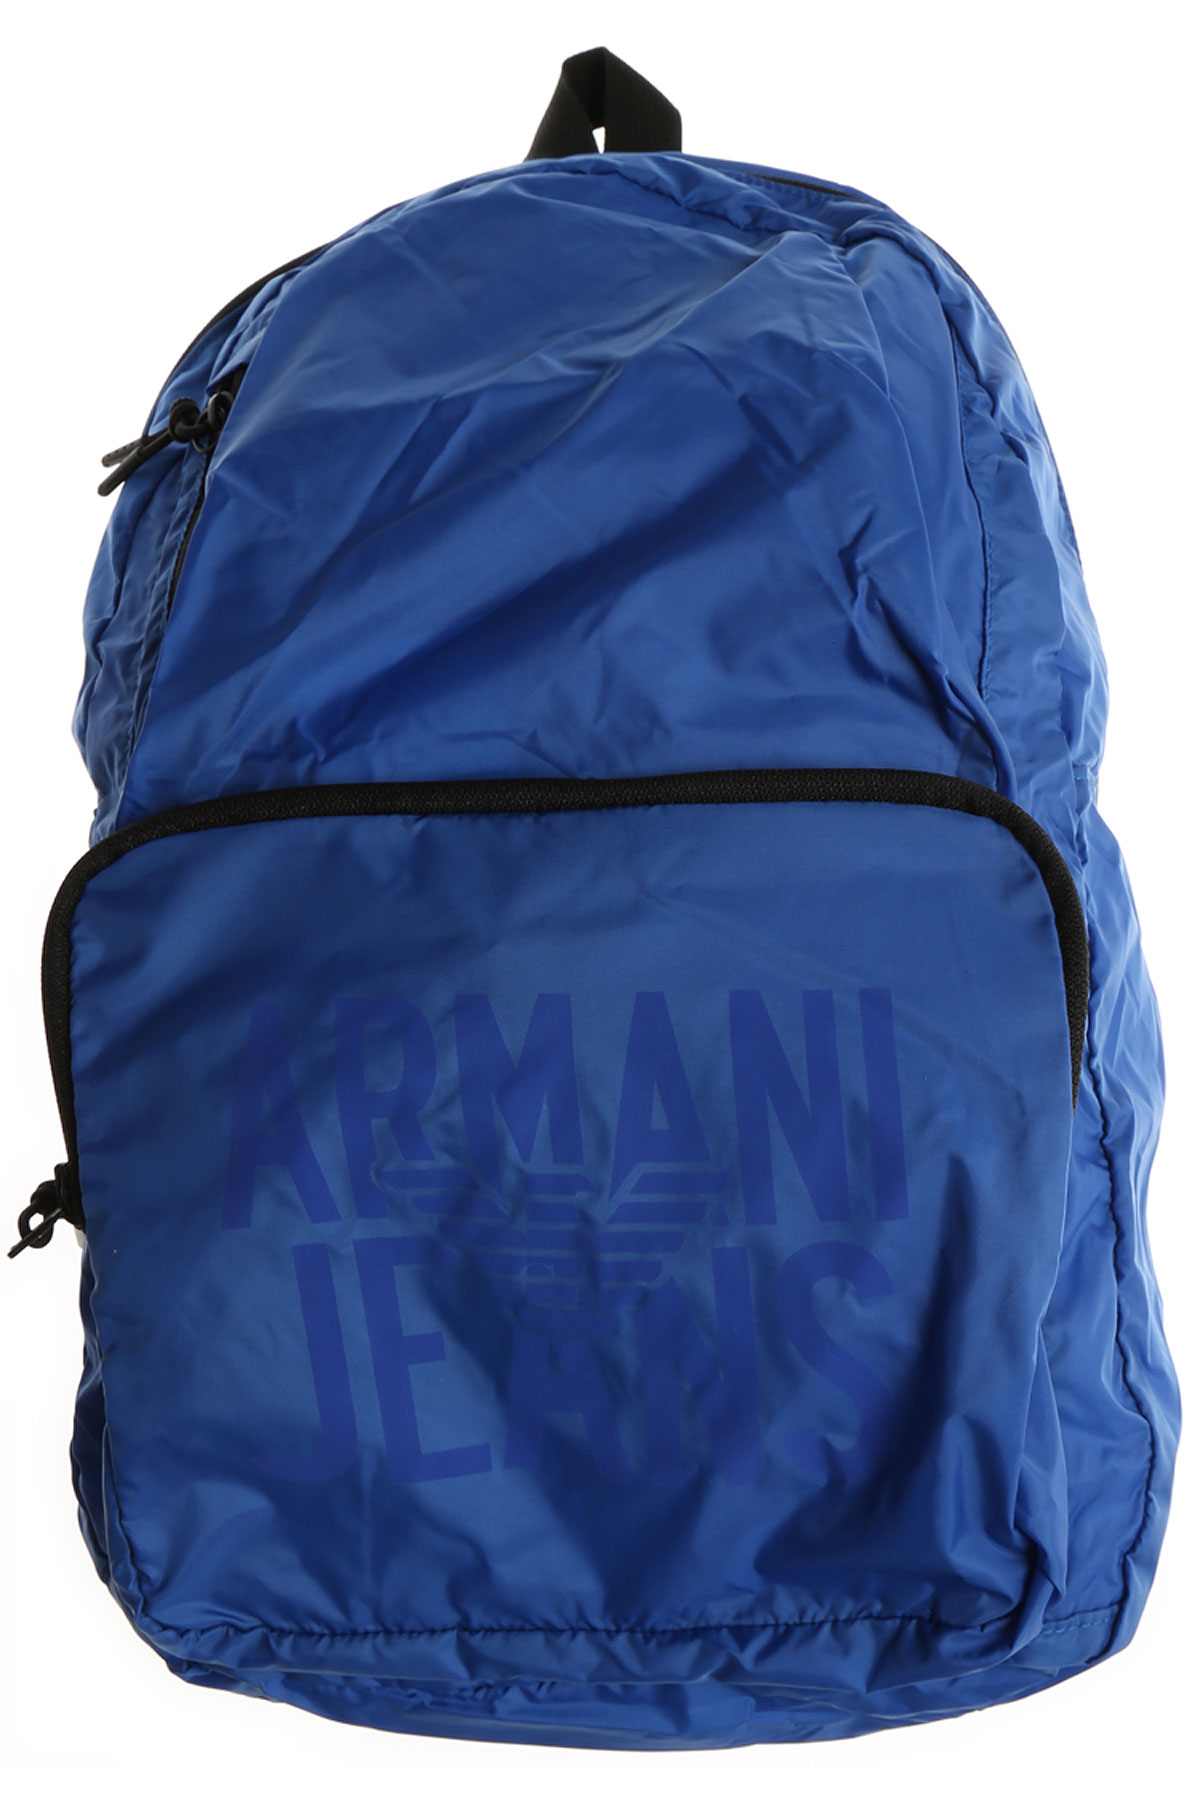 Image of Emporio Armani Backpack for Men, Bluette, Nylon, 2017